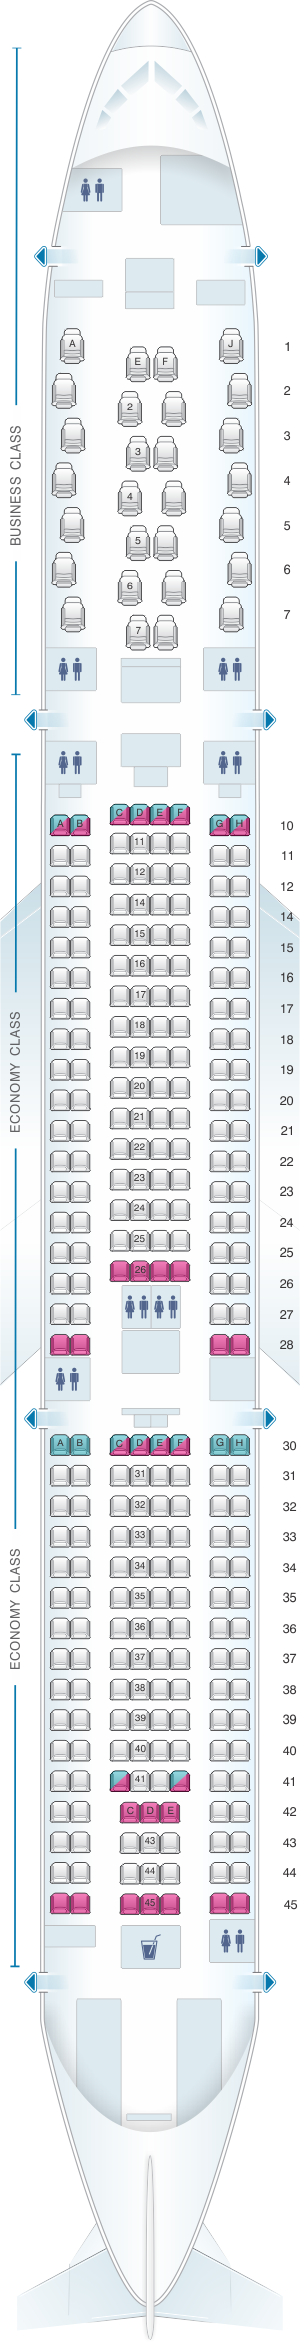 Seat map for Air Mauritius Airbus A330 900Neo